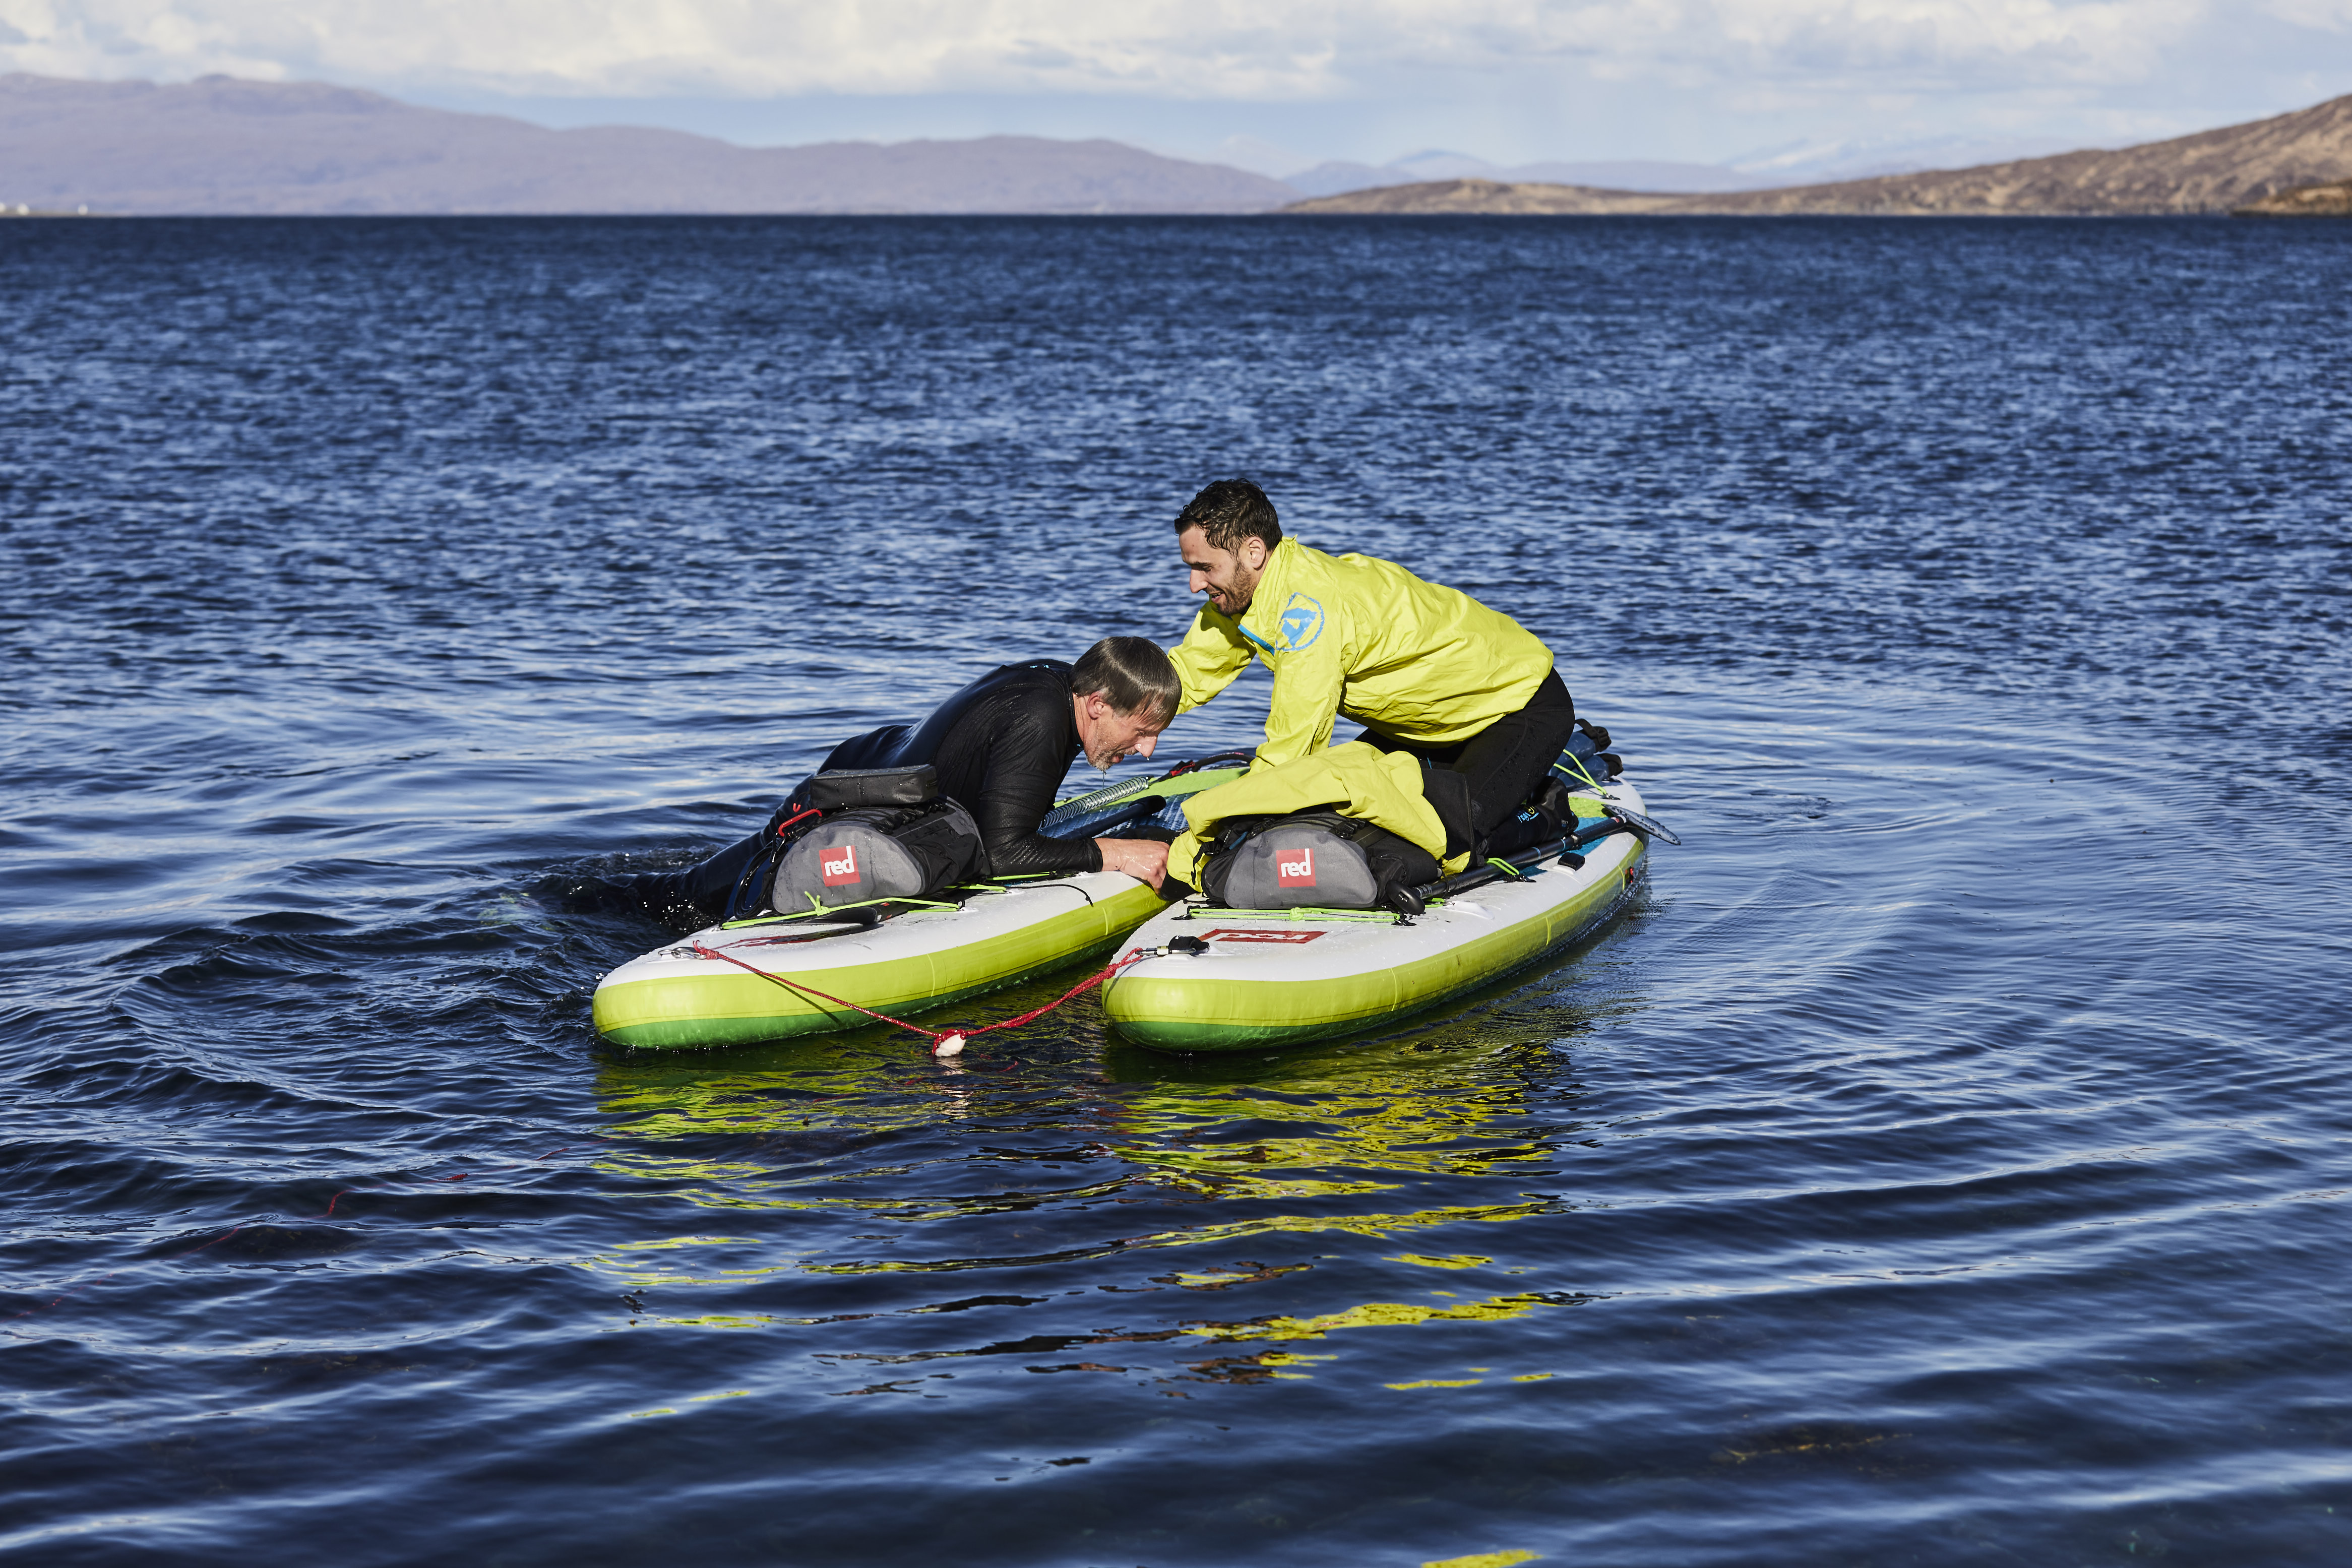 One male paddle boarder helps another back onto his inflatable paddle board after falling in